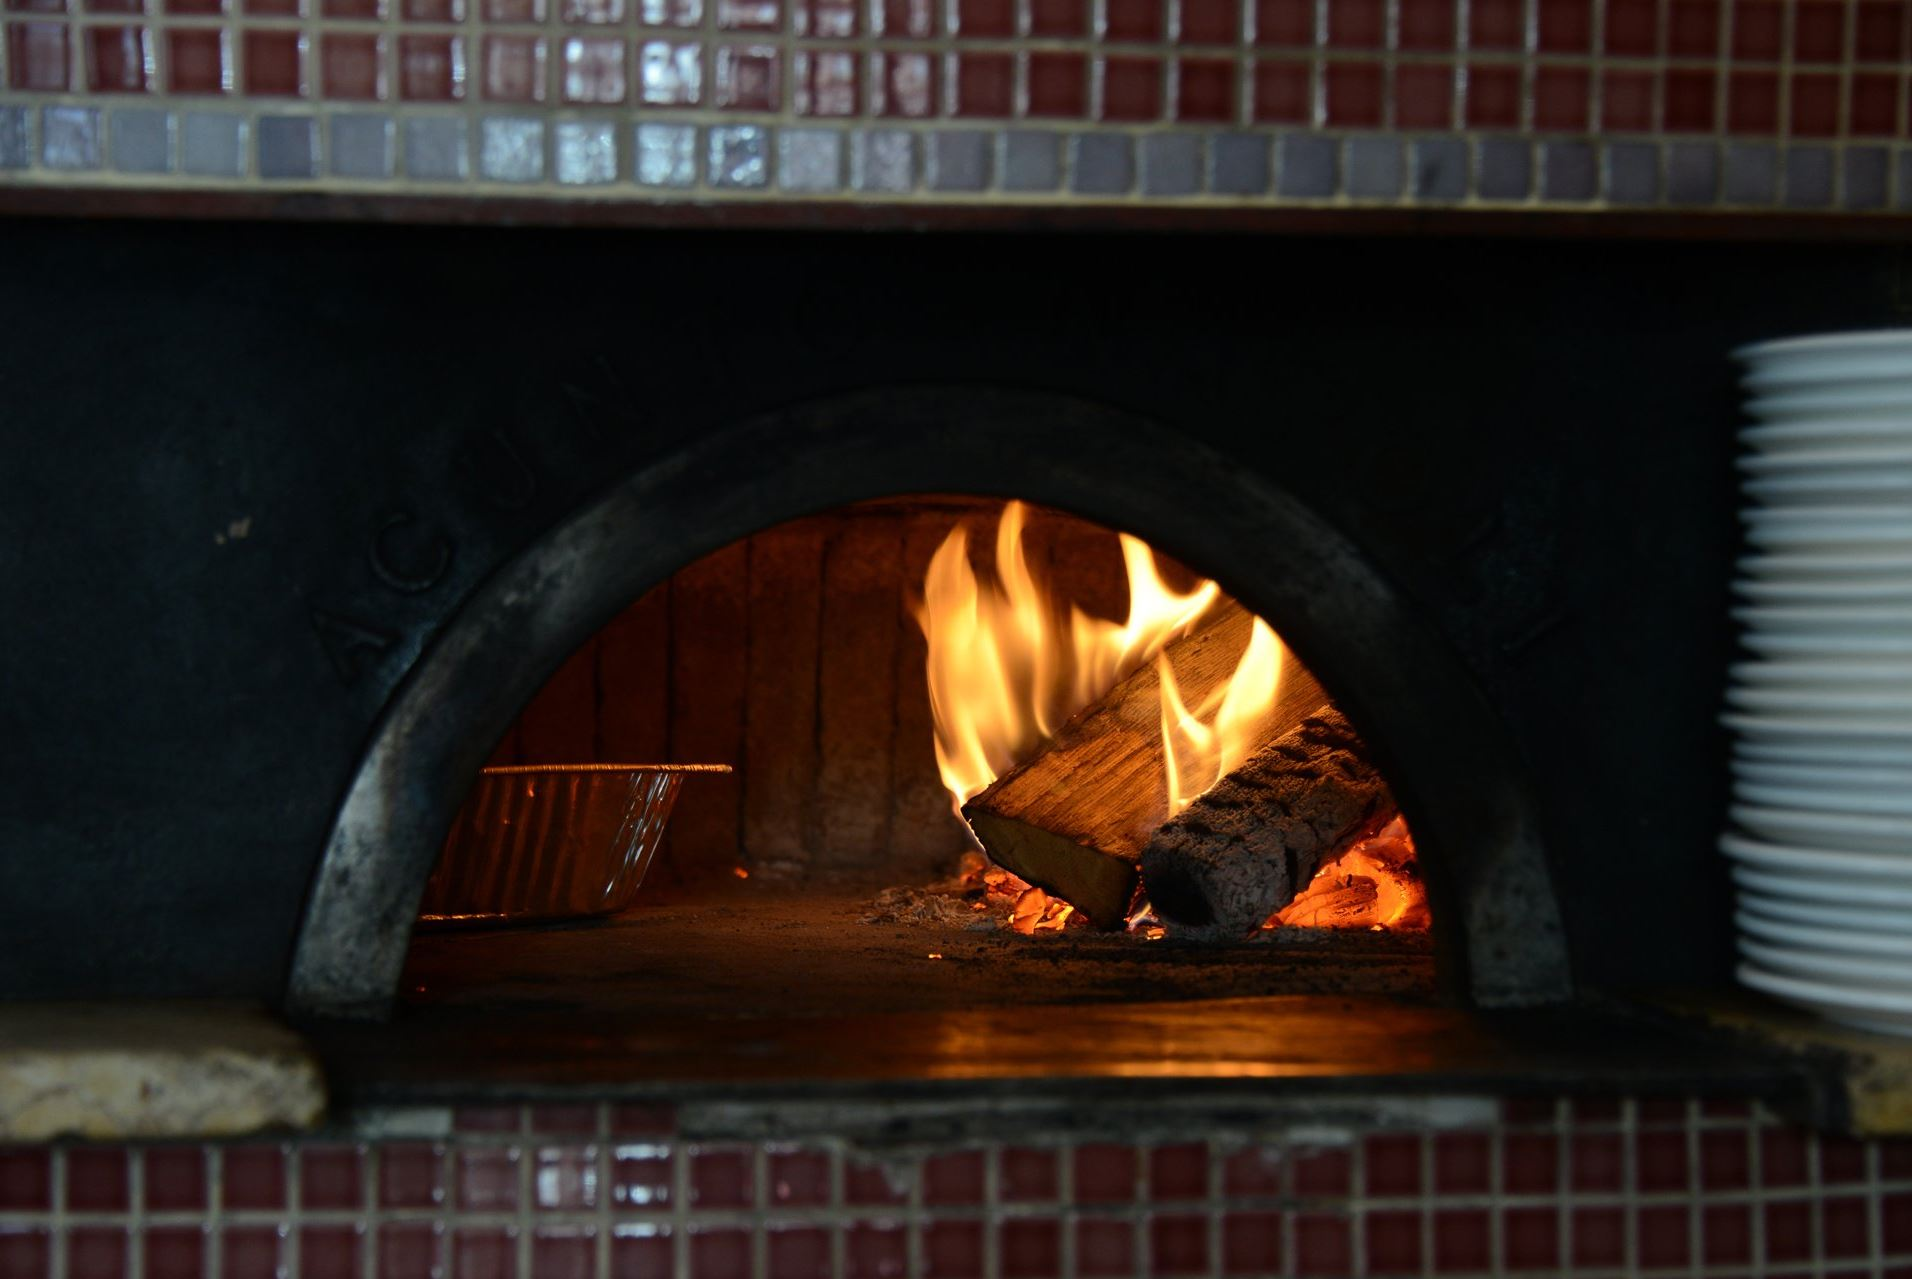 201435RARmagoven1 A fire in the wood burning oven at Piccolo Forno in Lawrenceville.